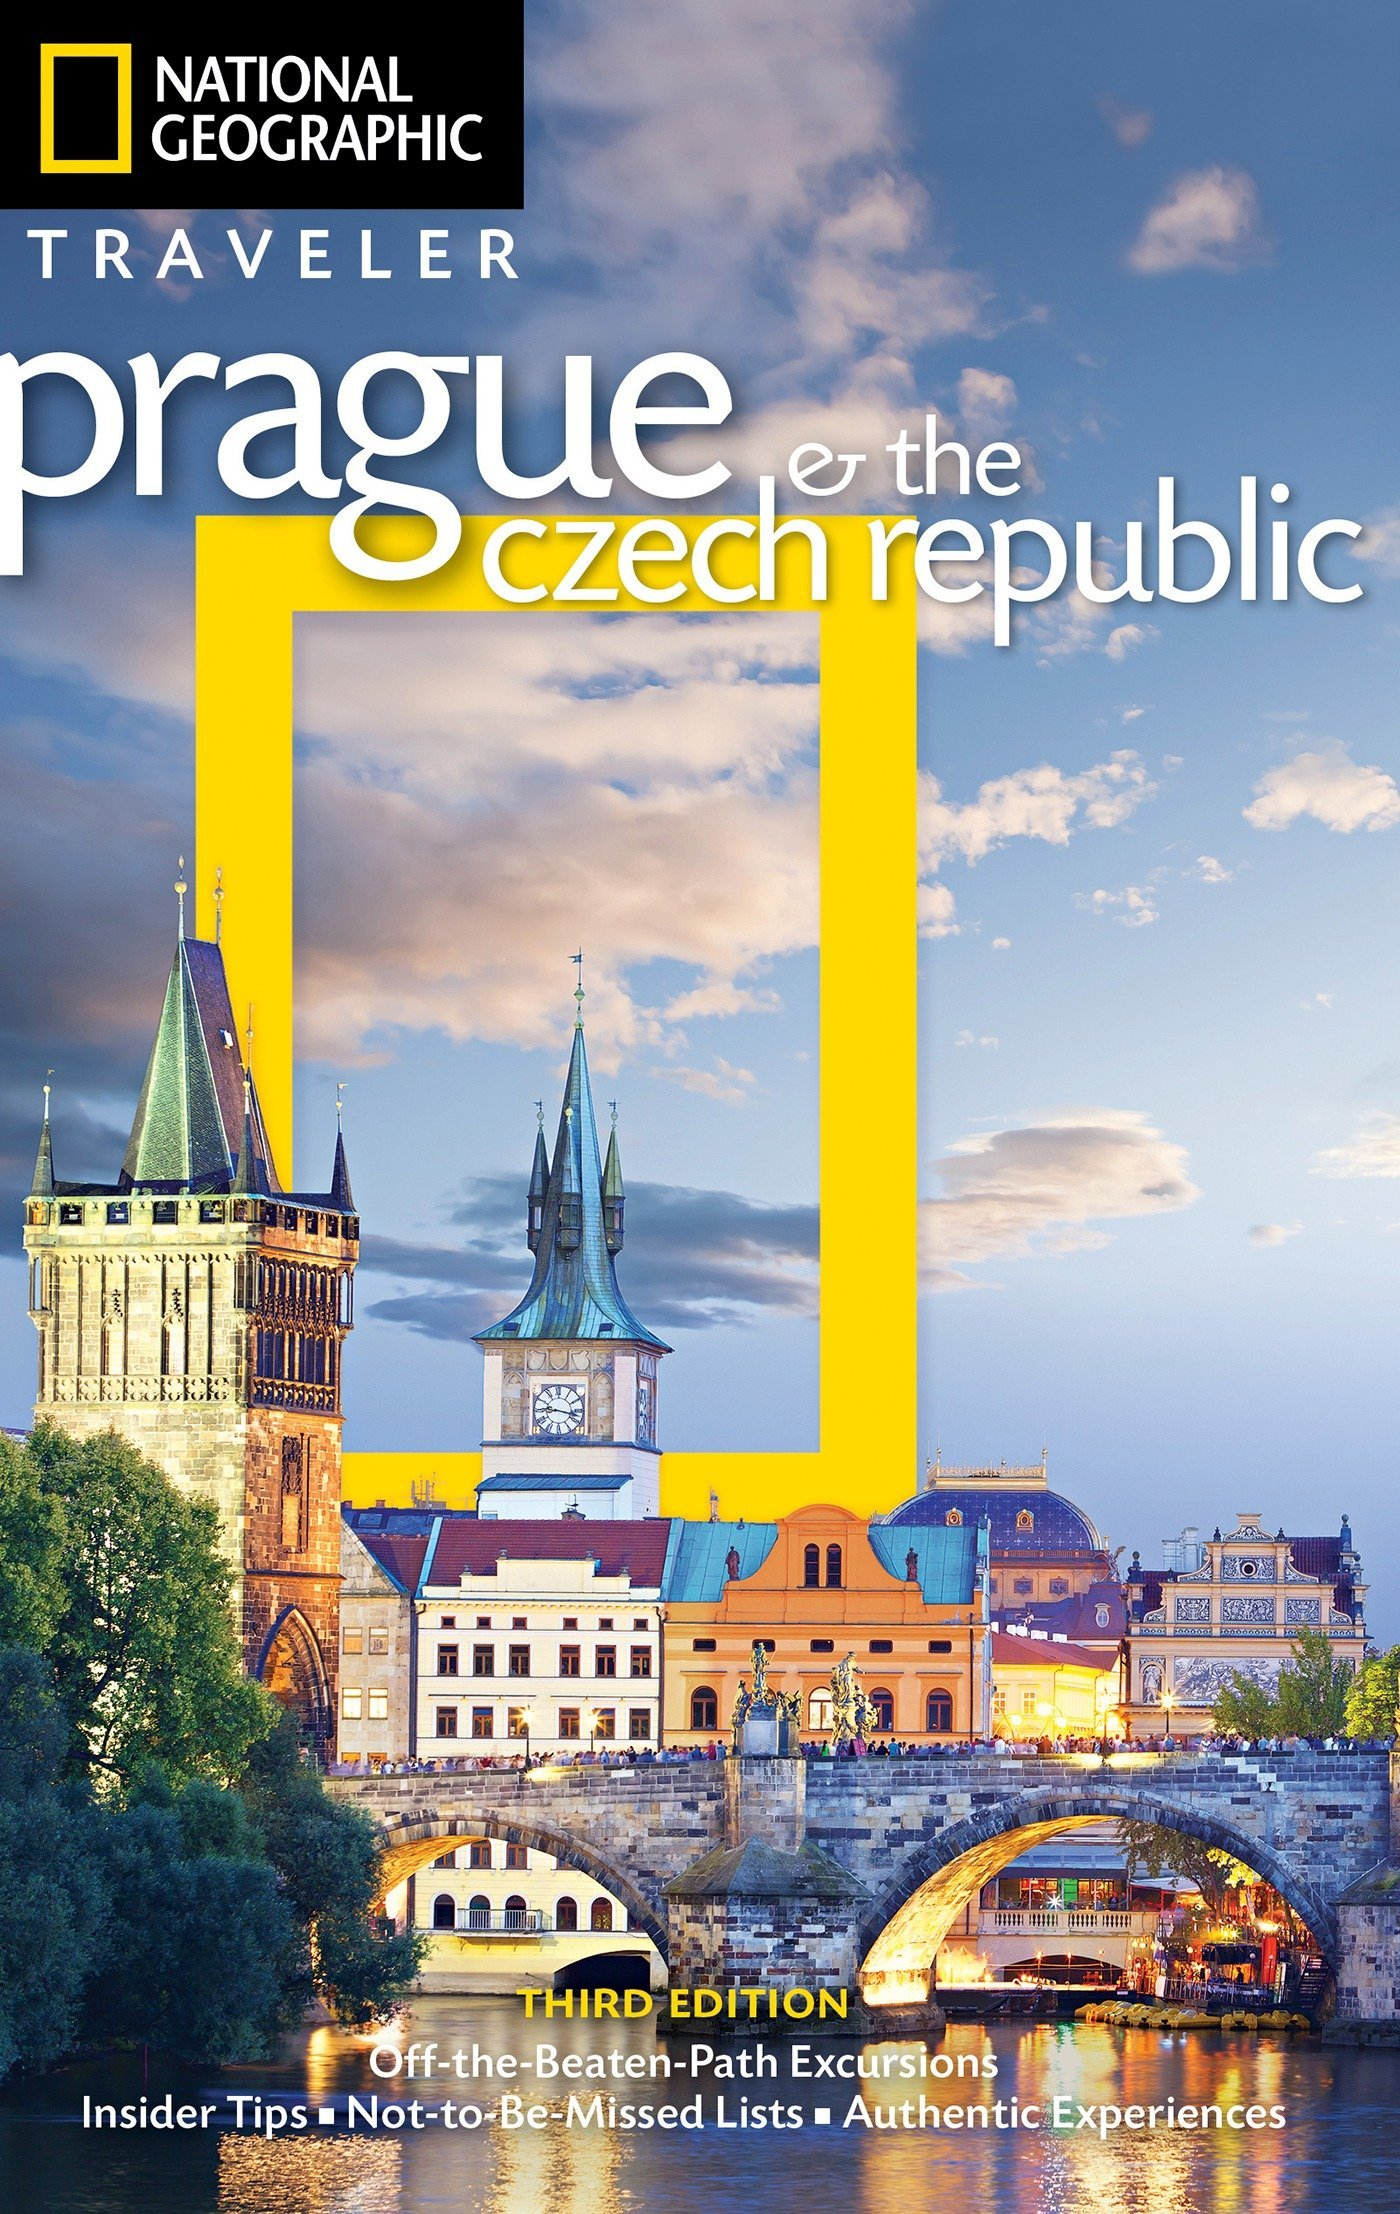 Download National Geographic Traveler: Prague and the Czech Republic, 3rd Edition ebook